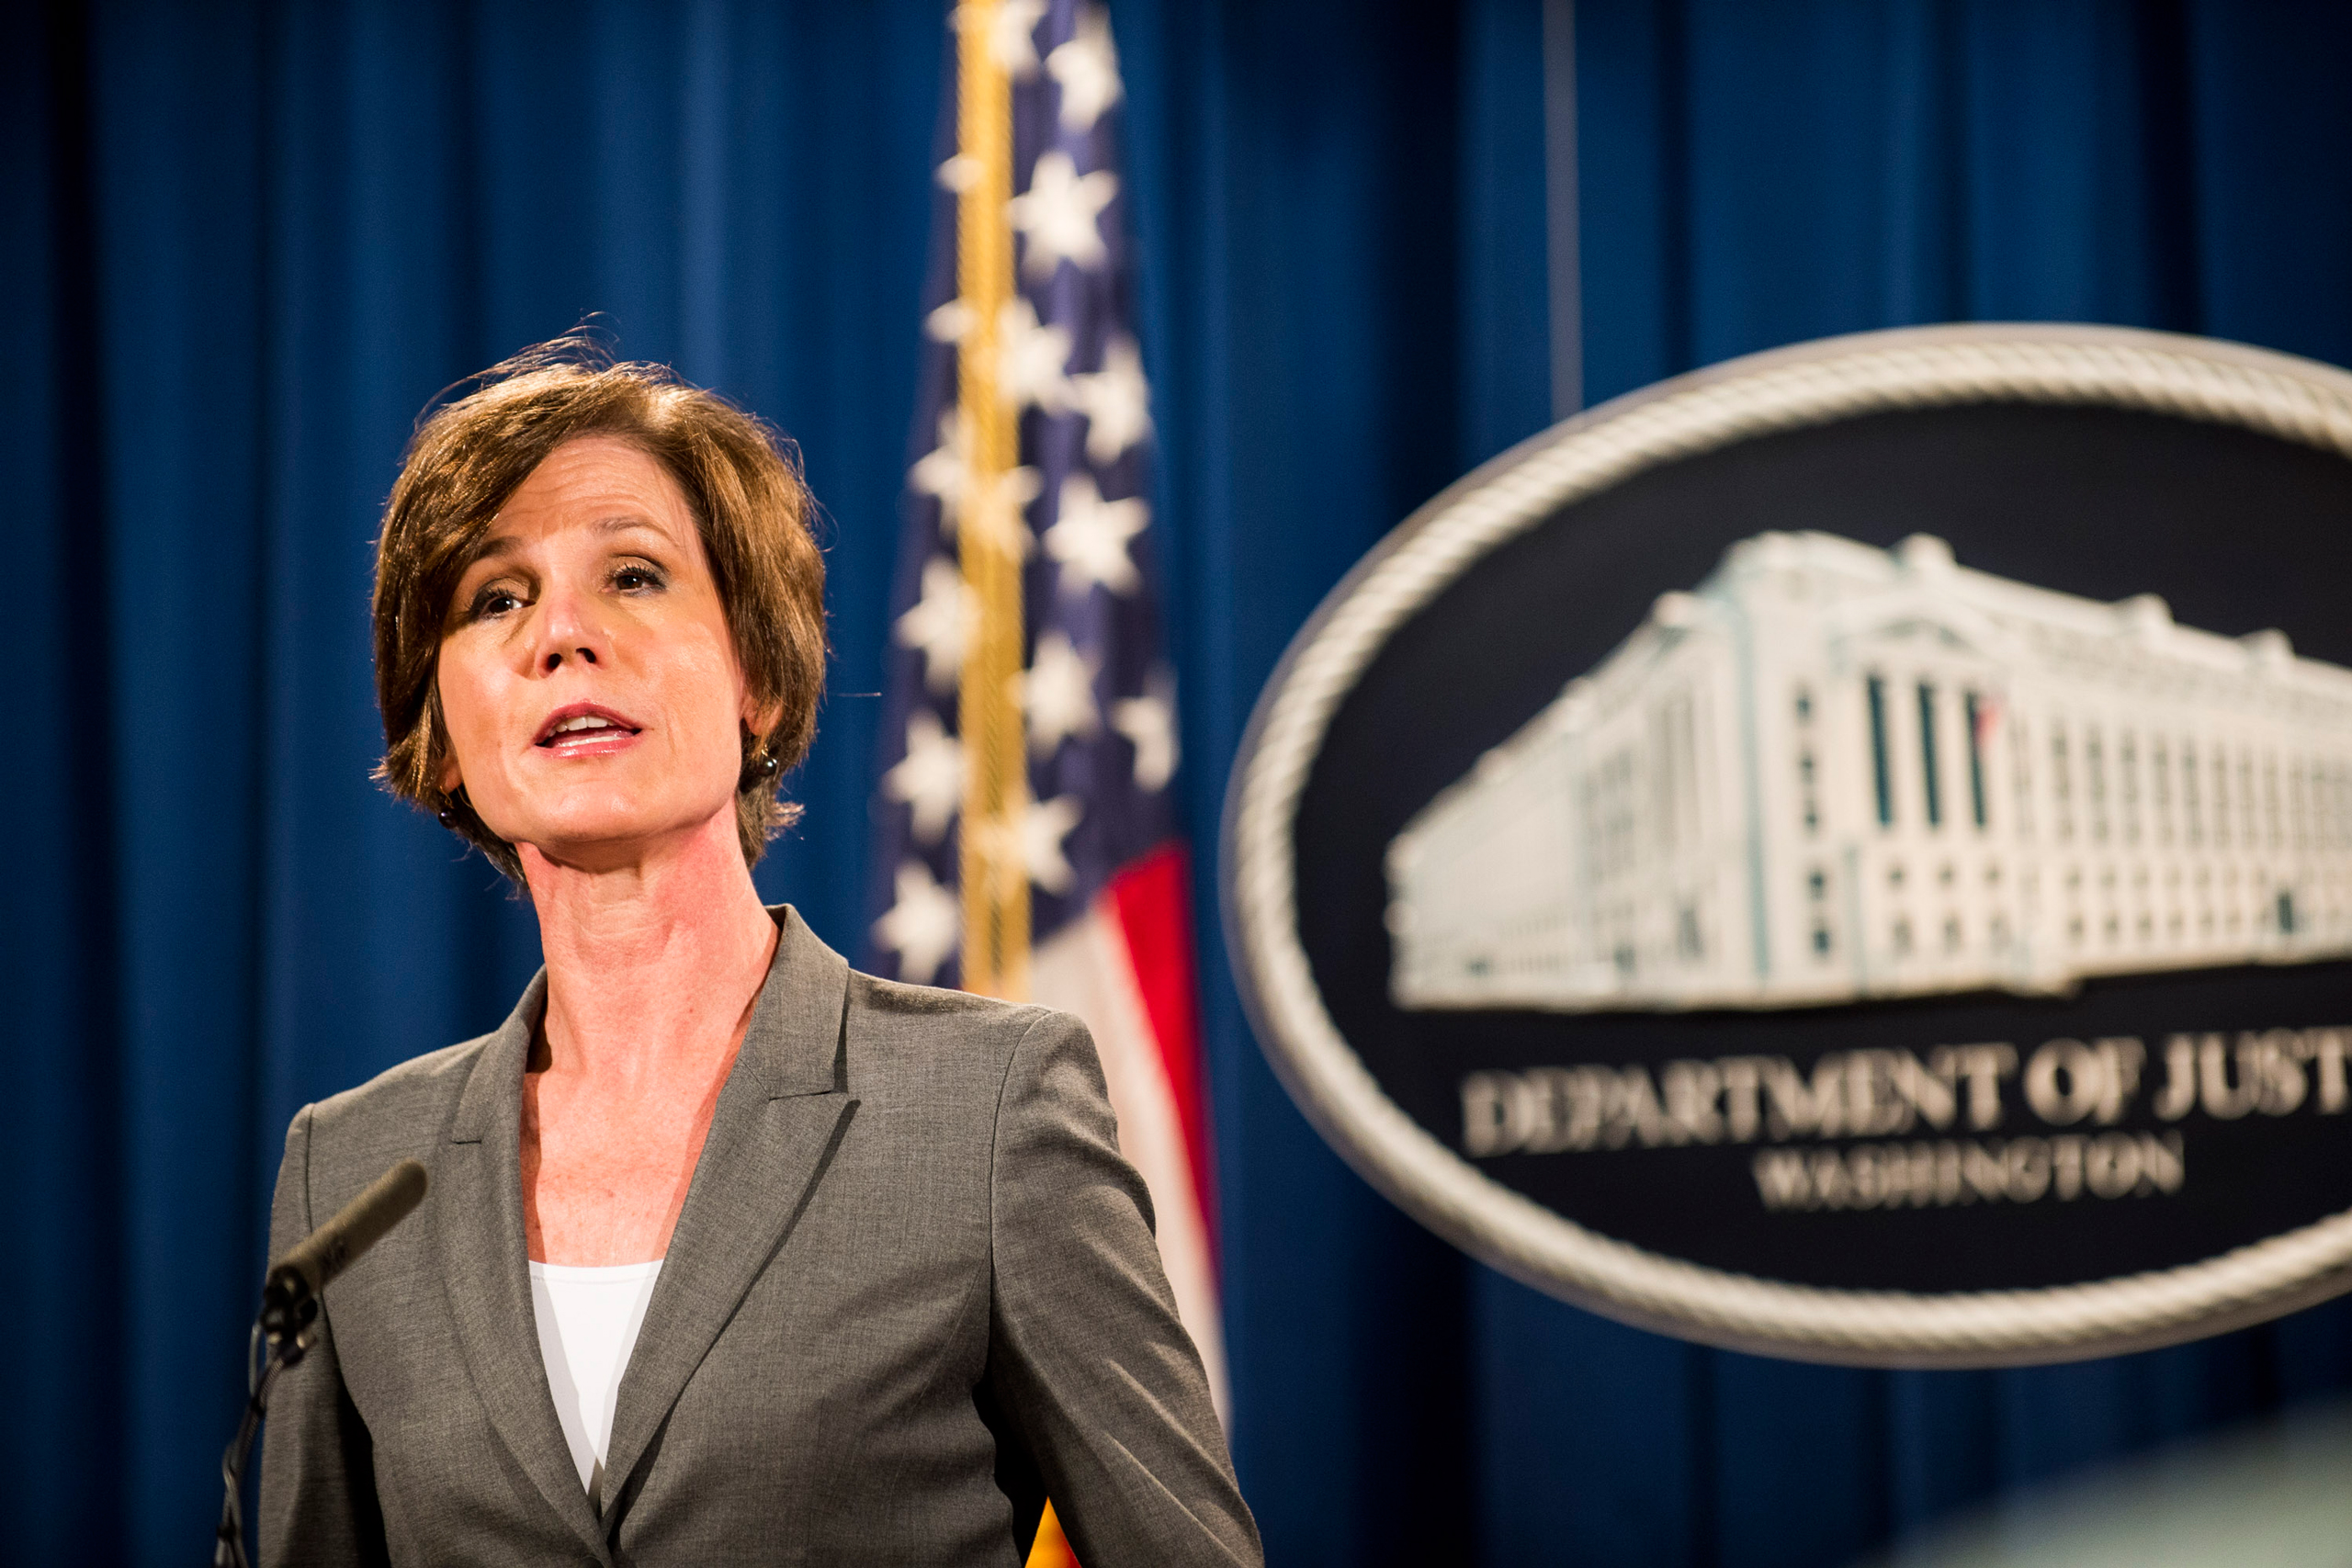 Deputy Attorney General Sally Q. Yates speaks during a press conference at the Department of Justice in Washington on June 28, 2016.